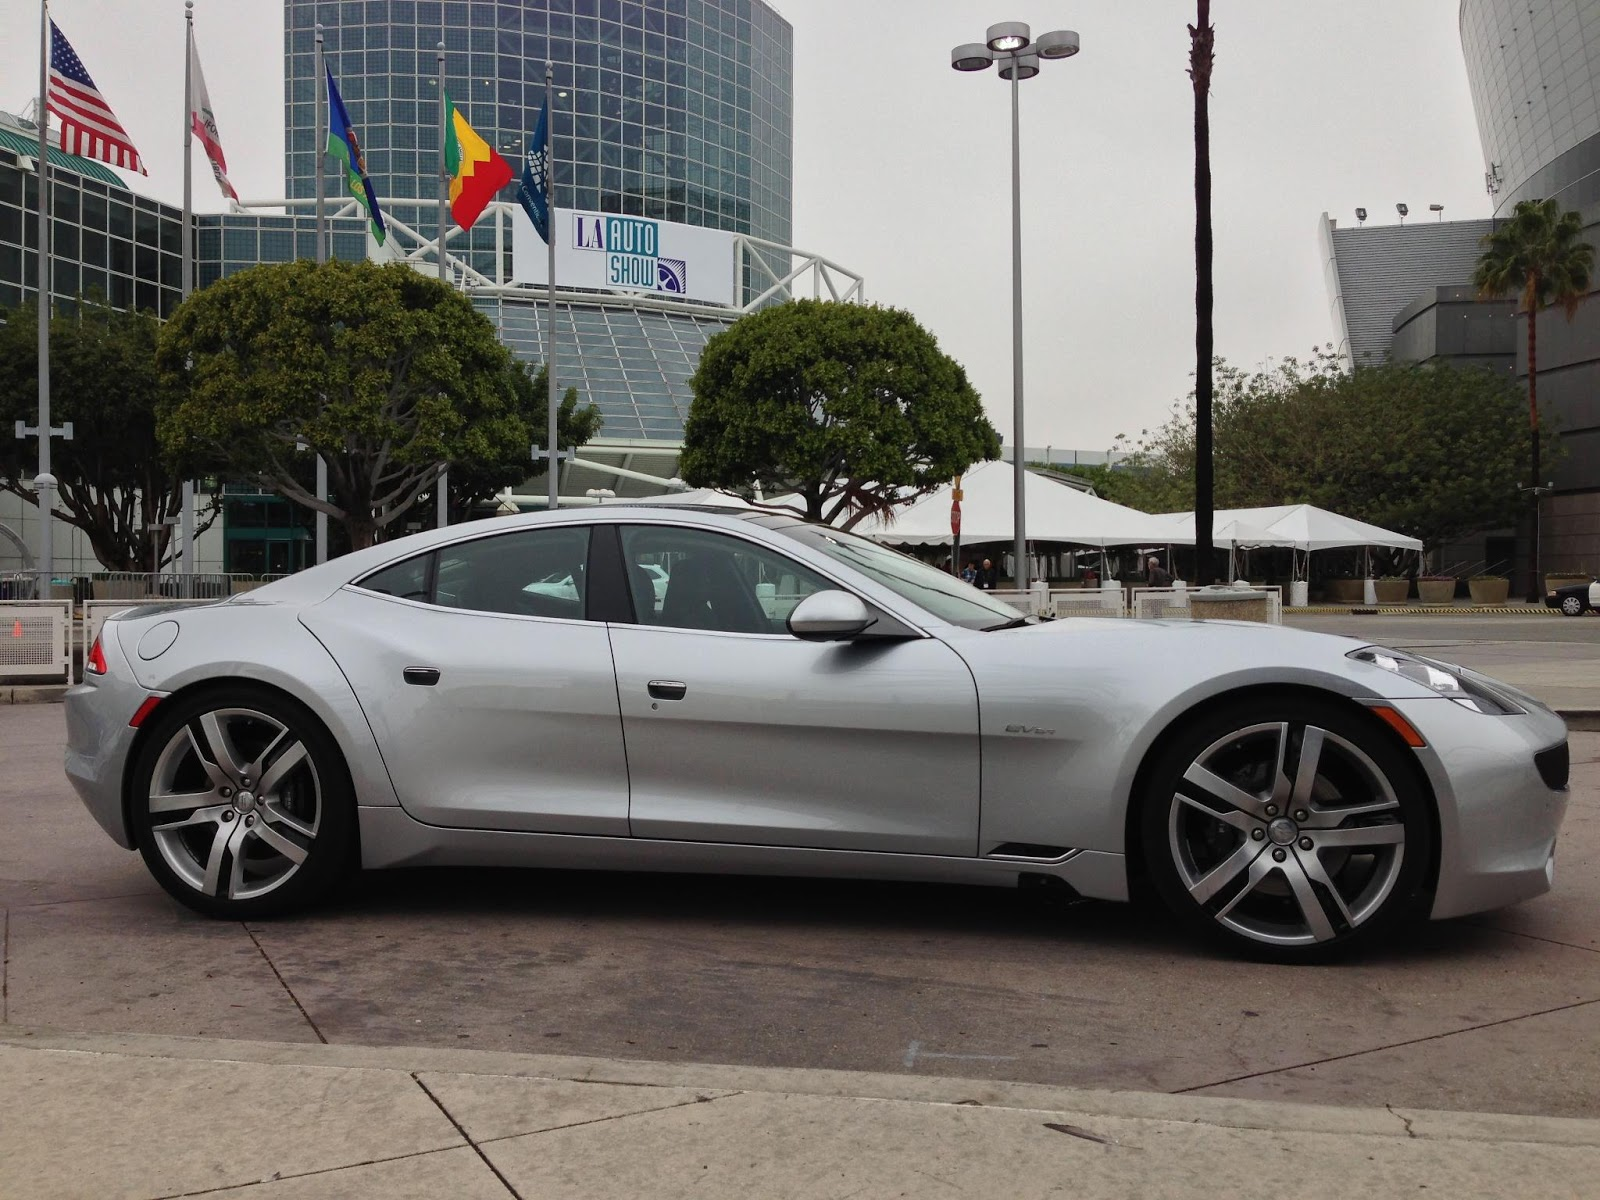 tesla et fisker augmentation des prix pour l 39 un production stopp e pour l 39 autre. Black Bedroom Furniture Sets. Home Design Ideas